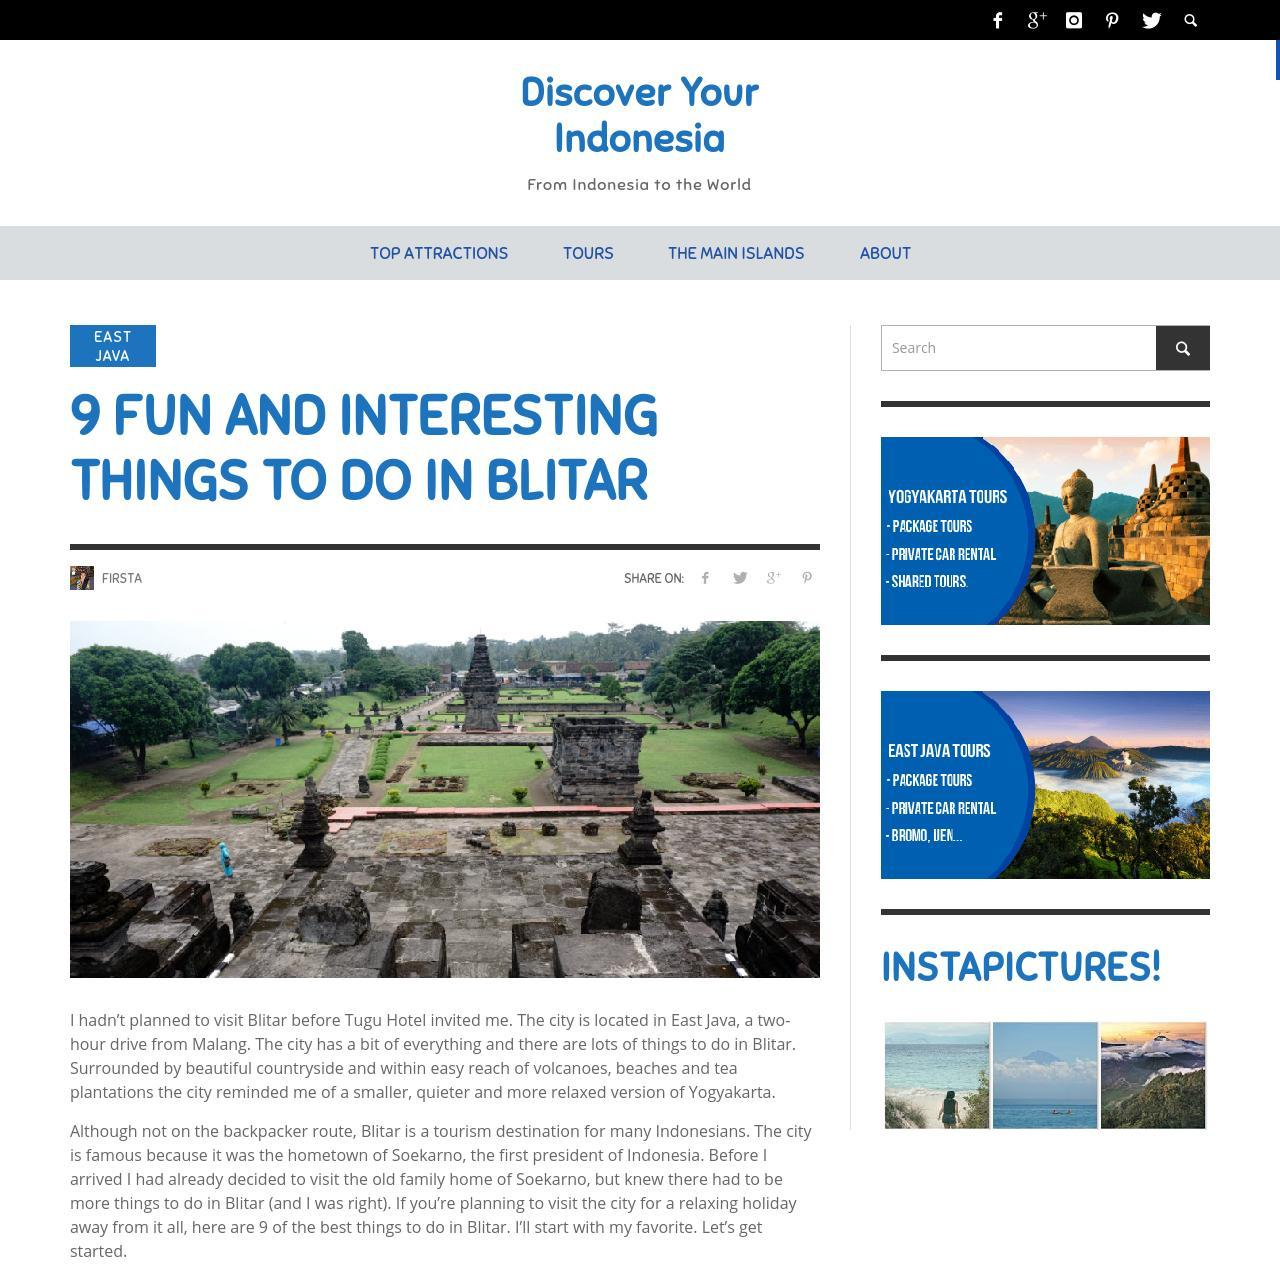 9 FUN AND INTERESTING THINGS TO DO IN BLITAR-thumb